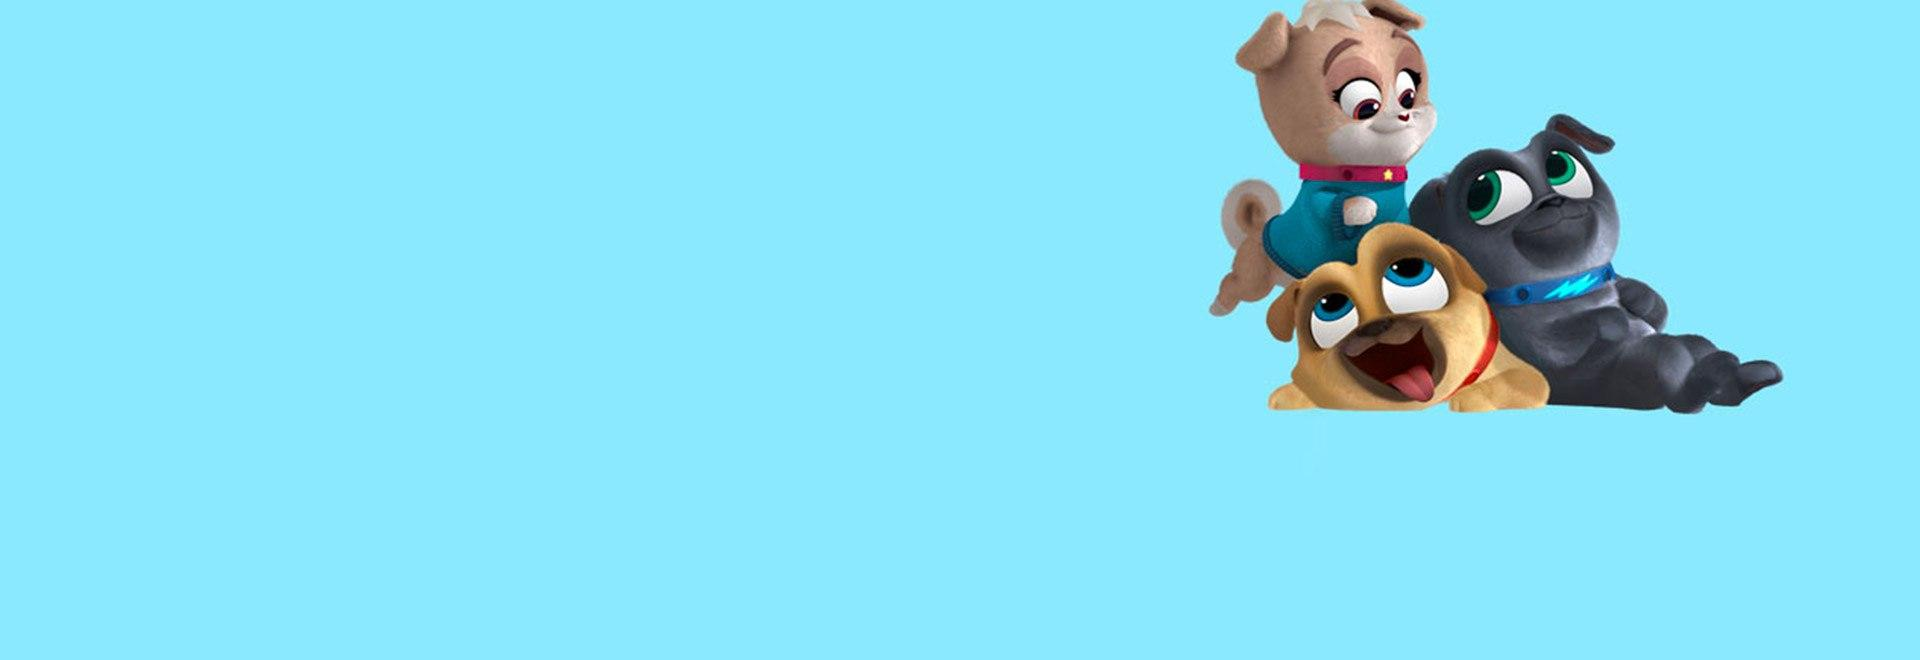 Le cene scomparse sul Puppytown Express